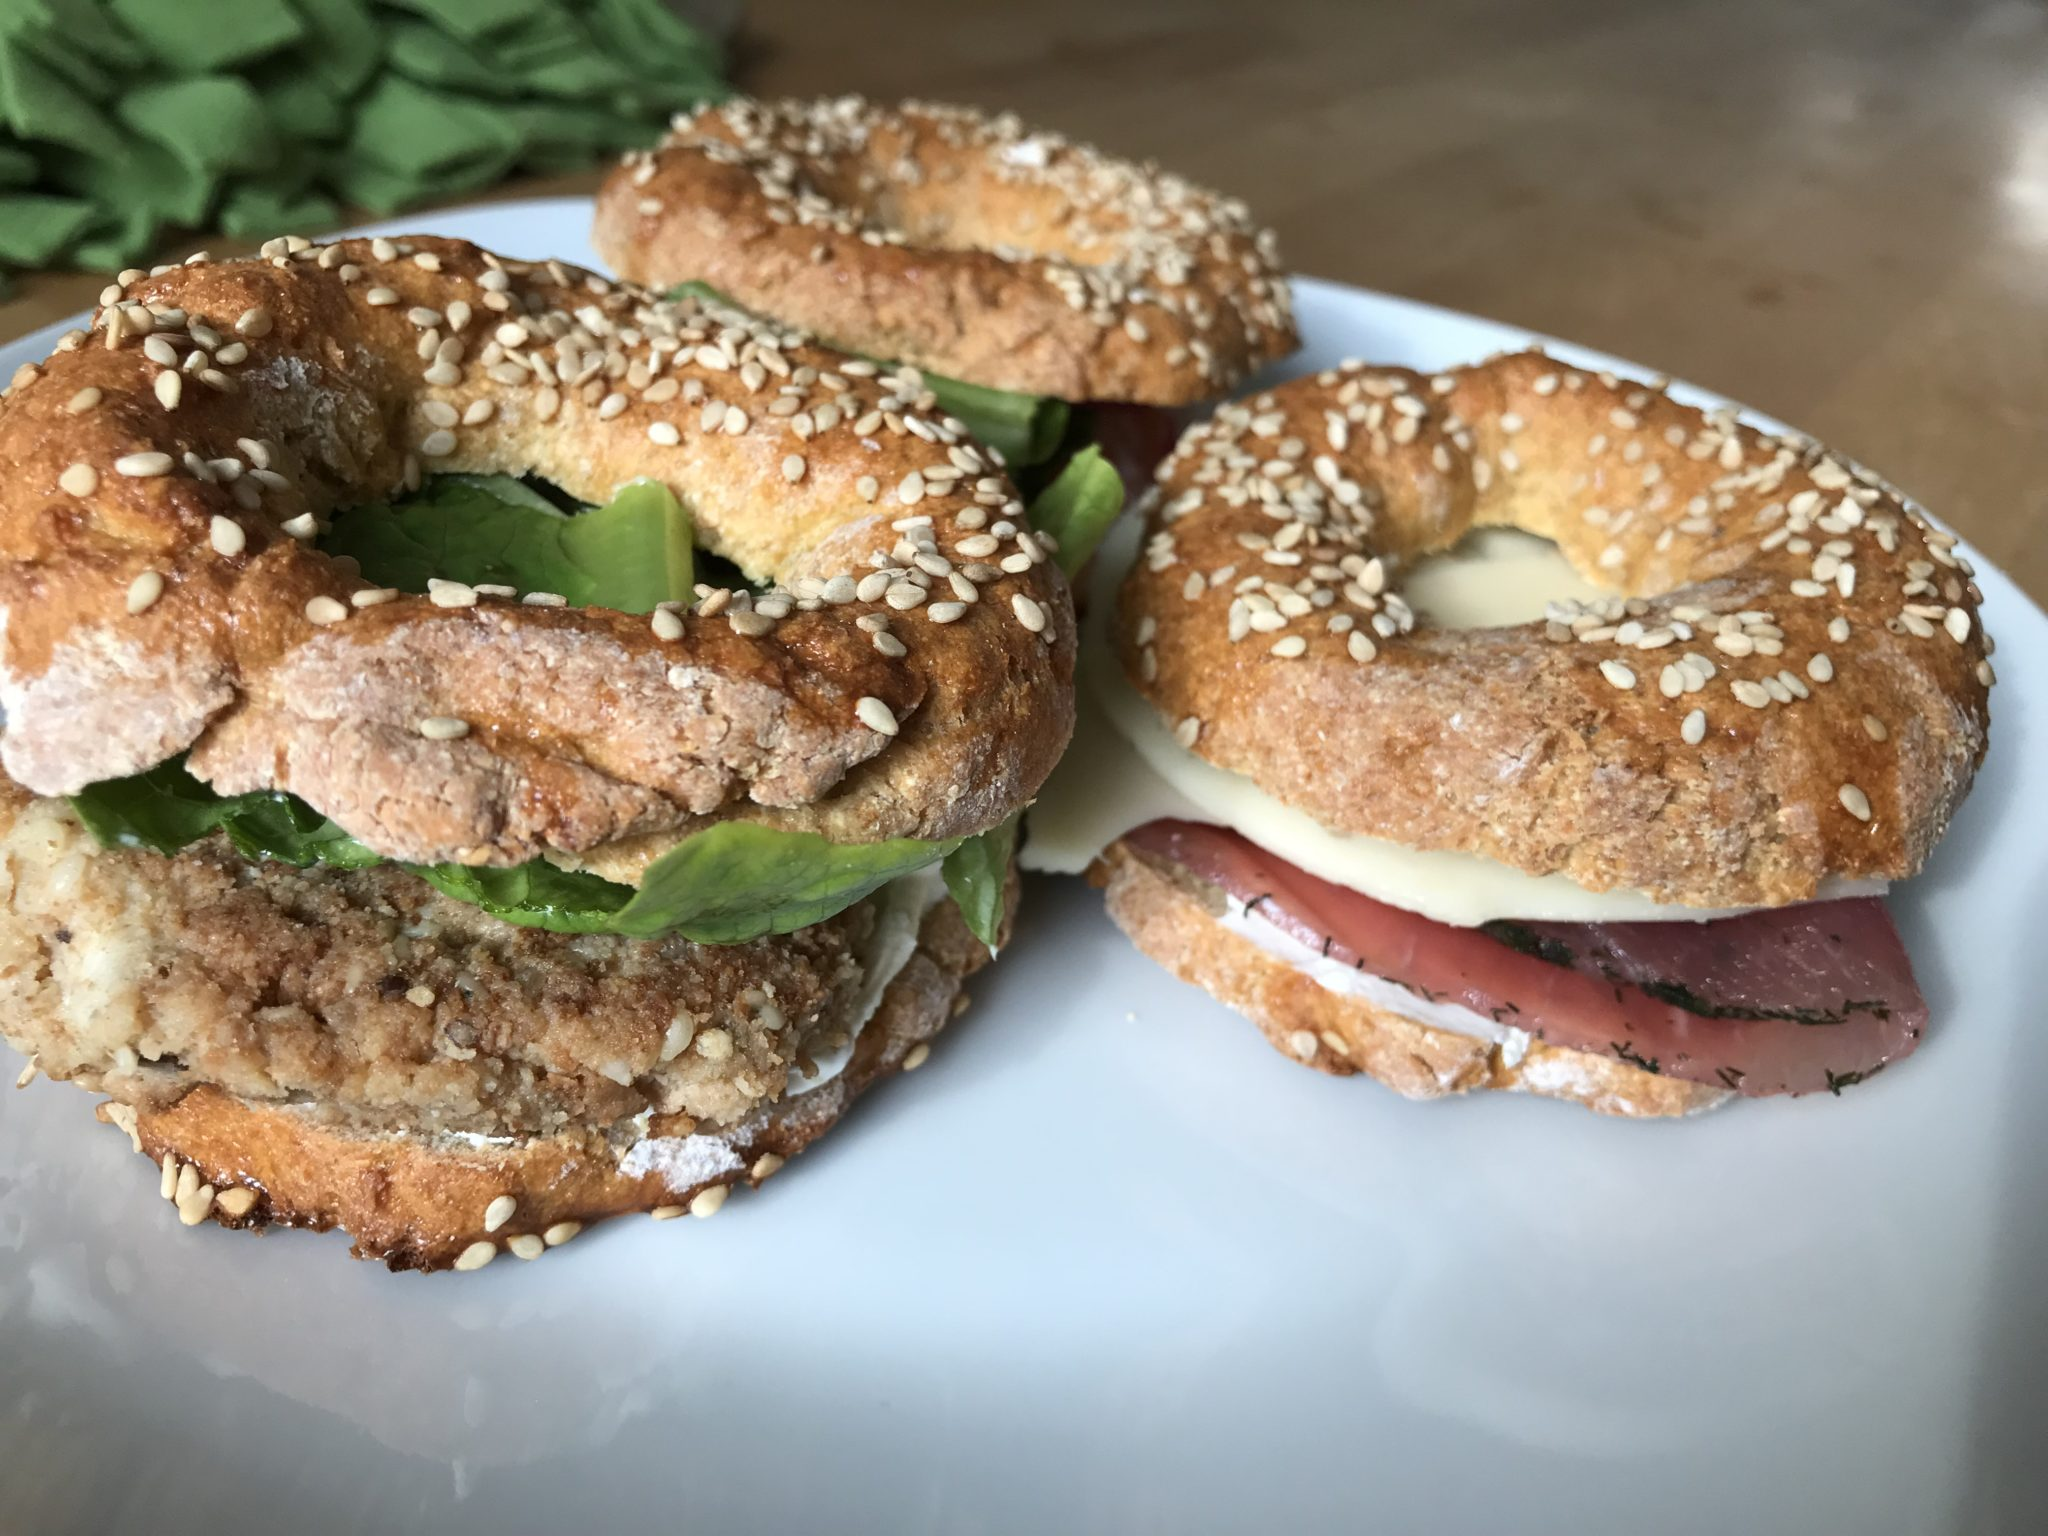 Lecker belegte Low-Carb Bagels mit Mozzarella